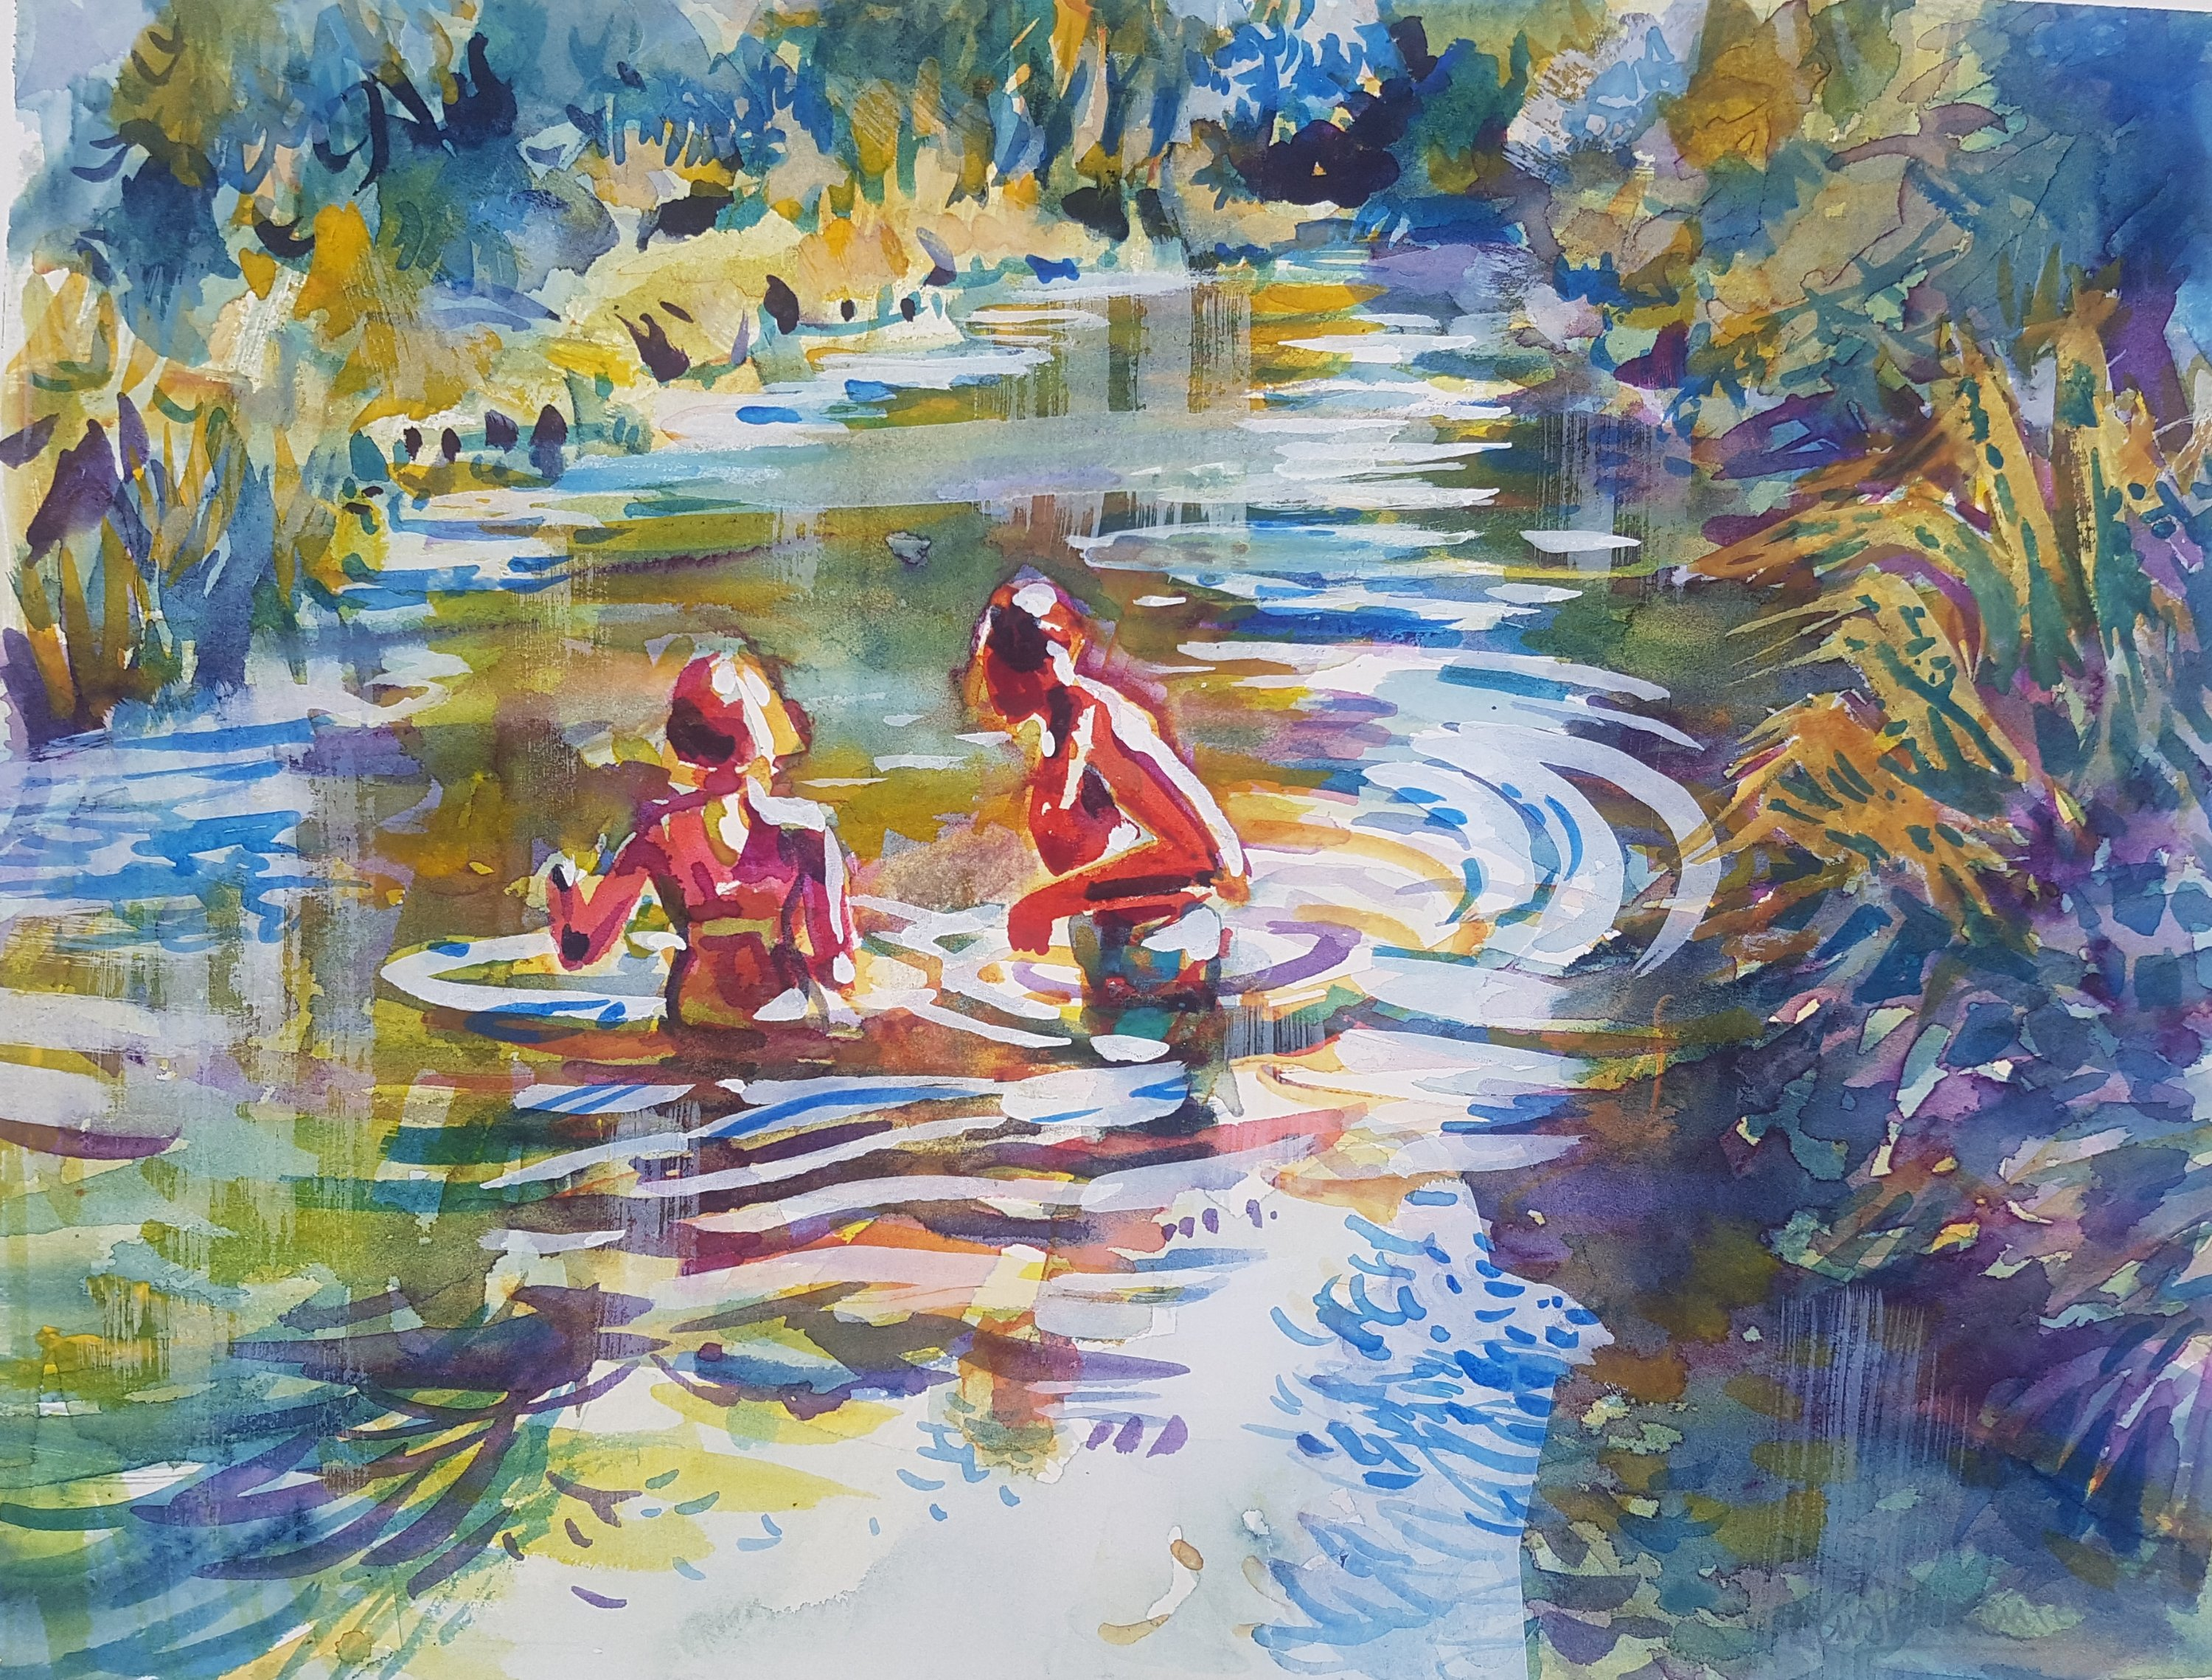 A Dip in the River - a watercolour by Kirstin White